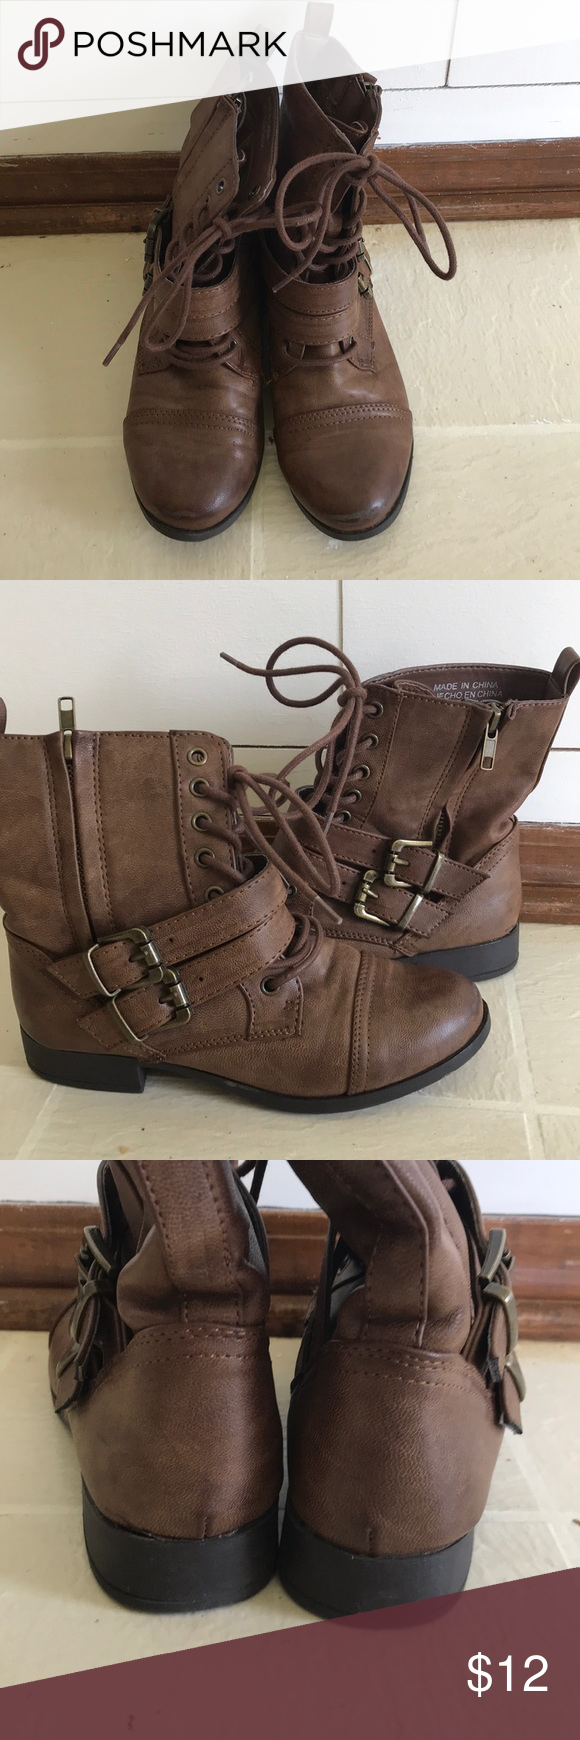 Forever 21 Brown ankle boots with buckles These are so cute and comfy! In  great condition except the very front of the toes have a scuff mark you  could ... 3a81a24e2f